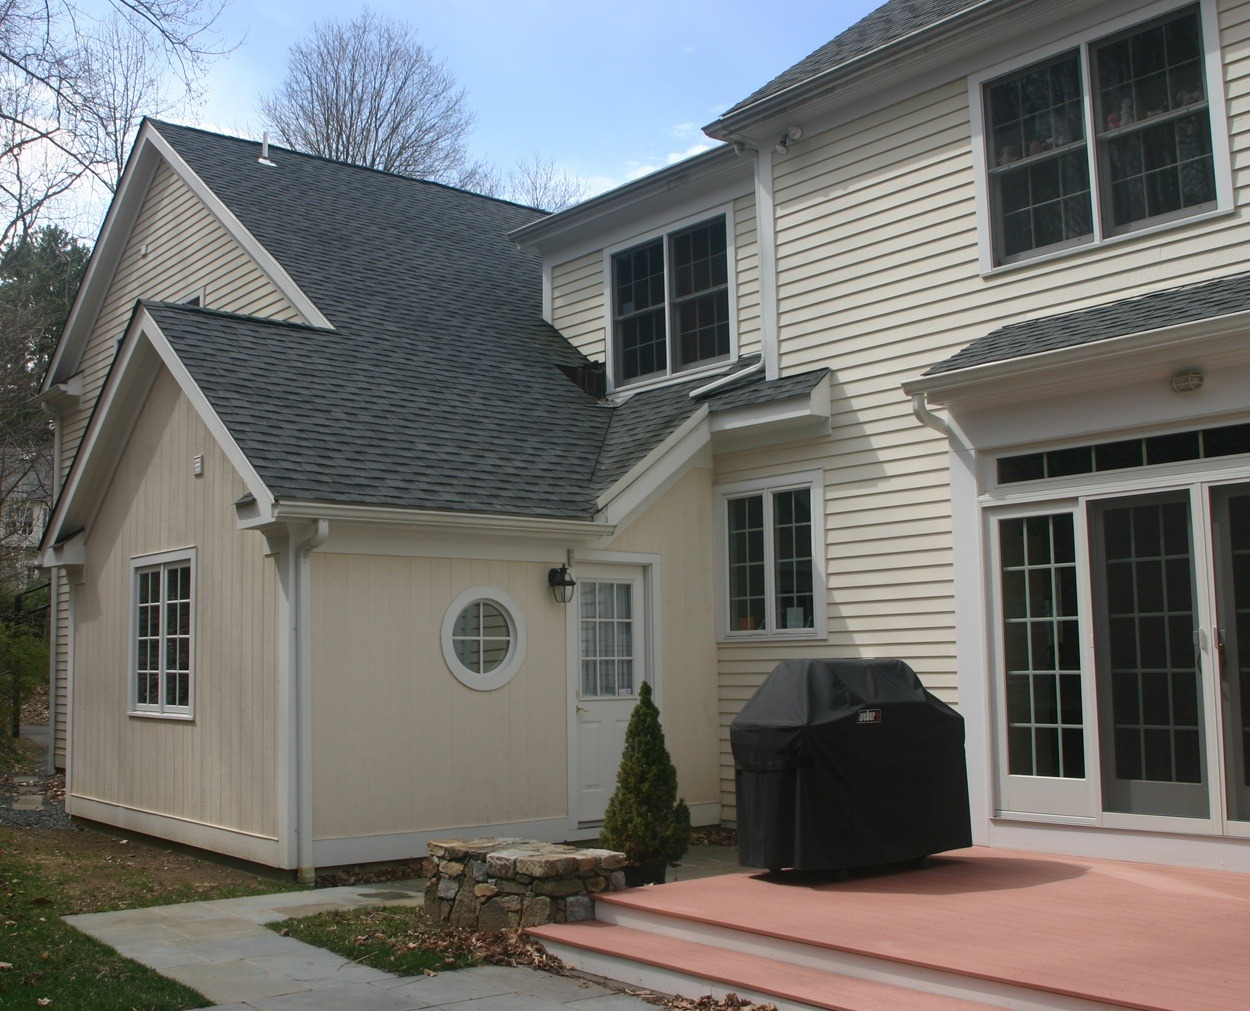 New garage bay blends into existing home.